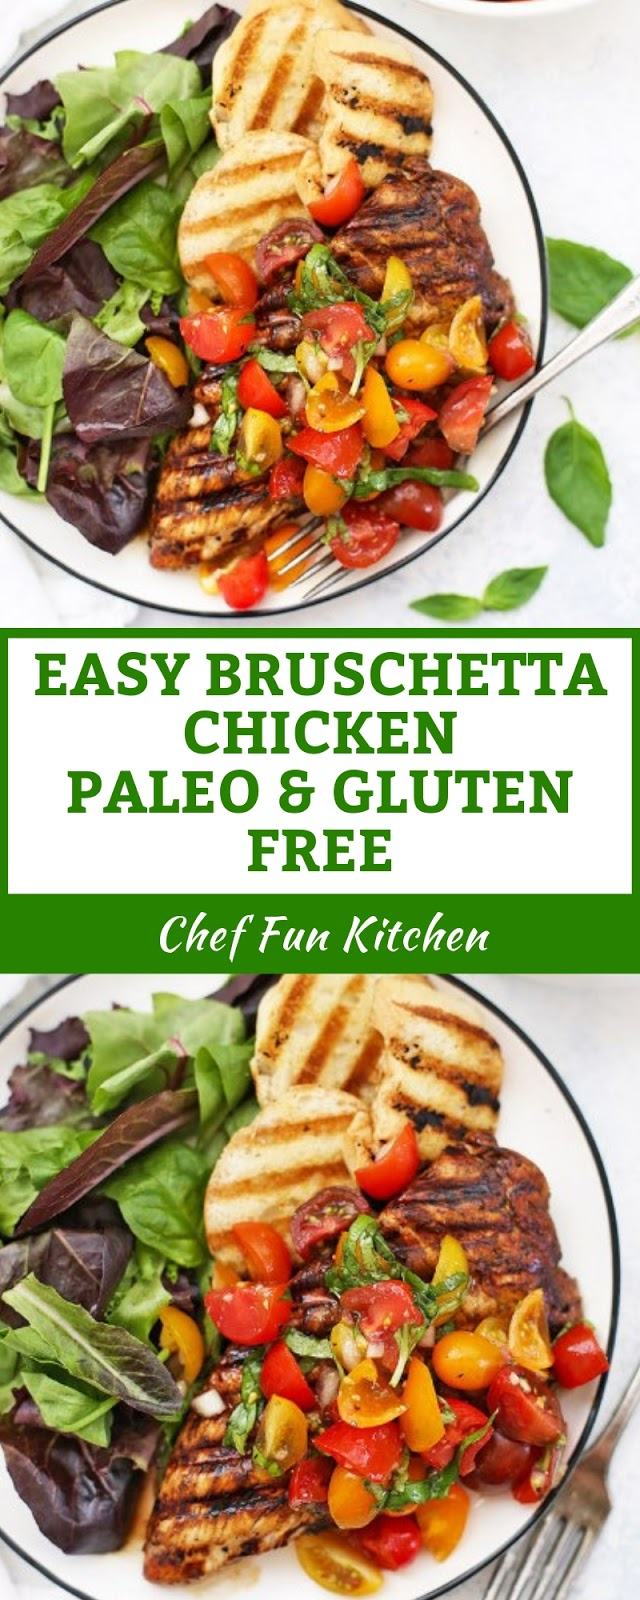 EASY BRUSCHETTA CHICKEN (PALEO & GLUTEN FREE)